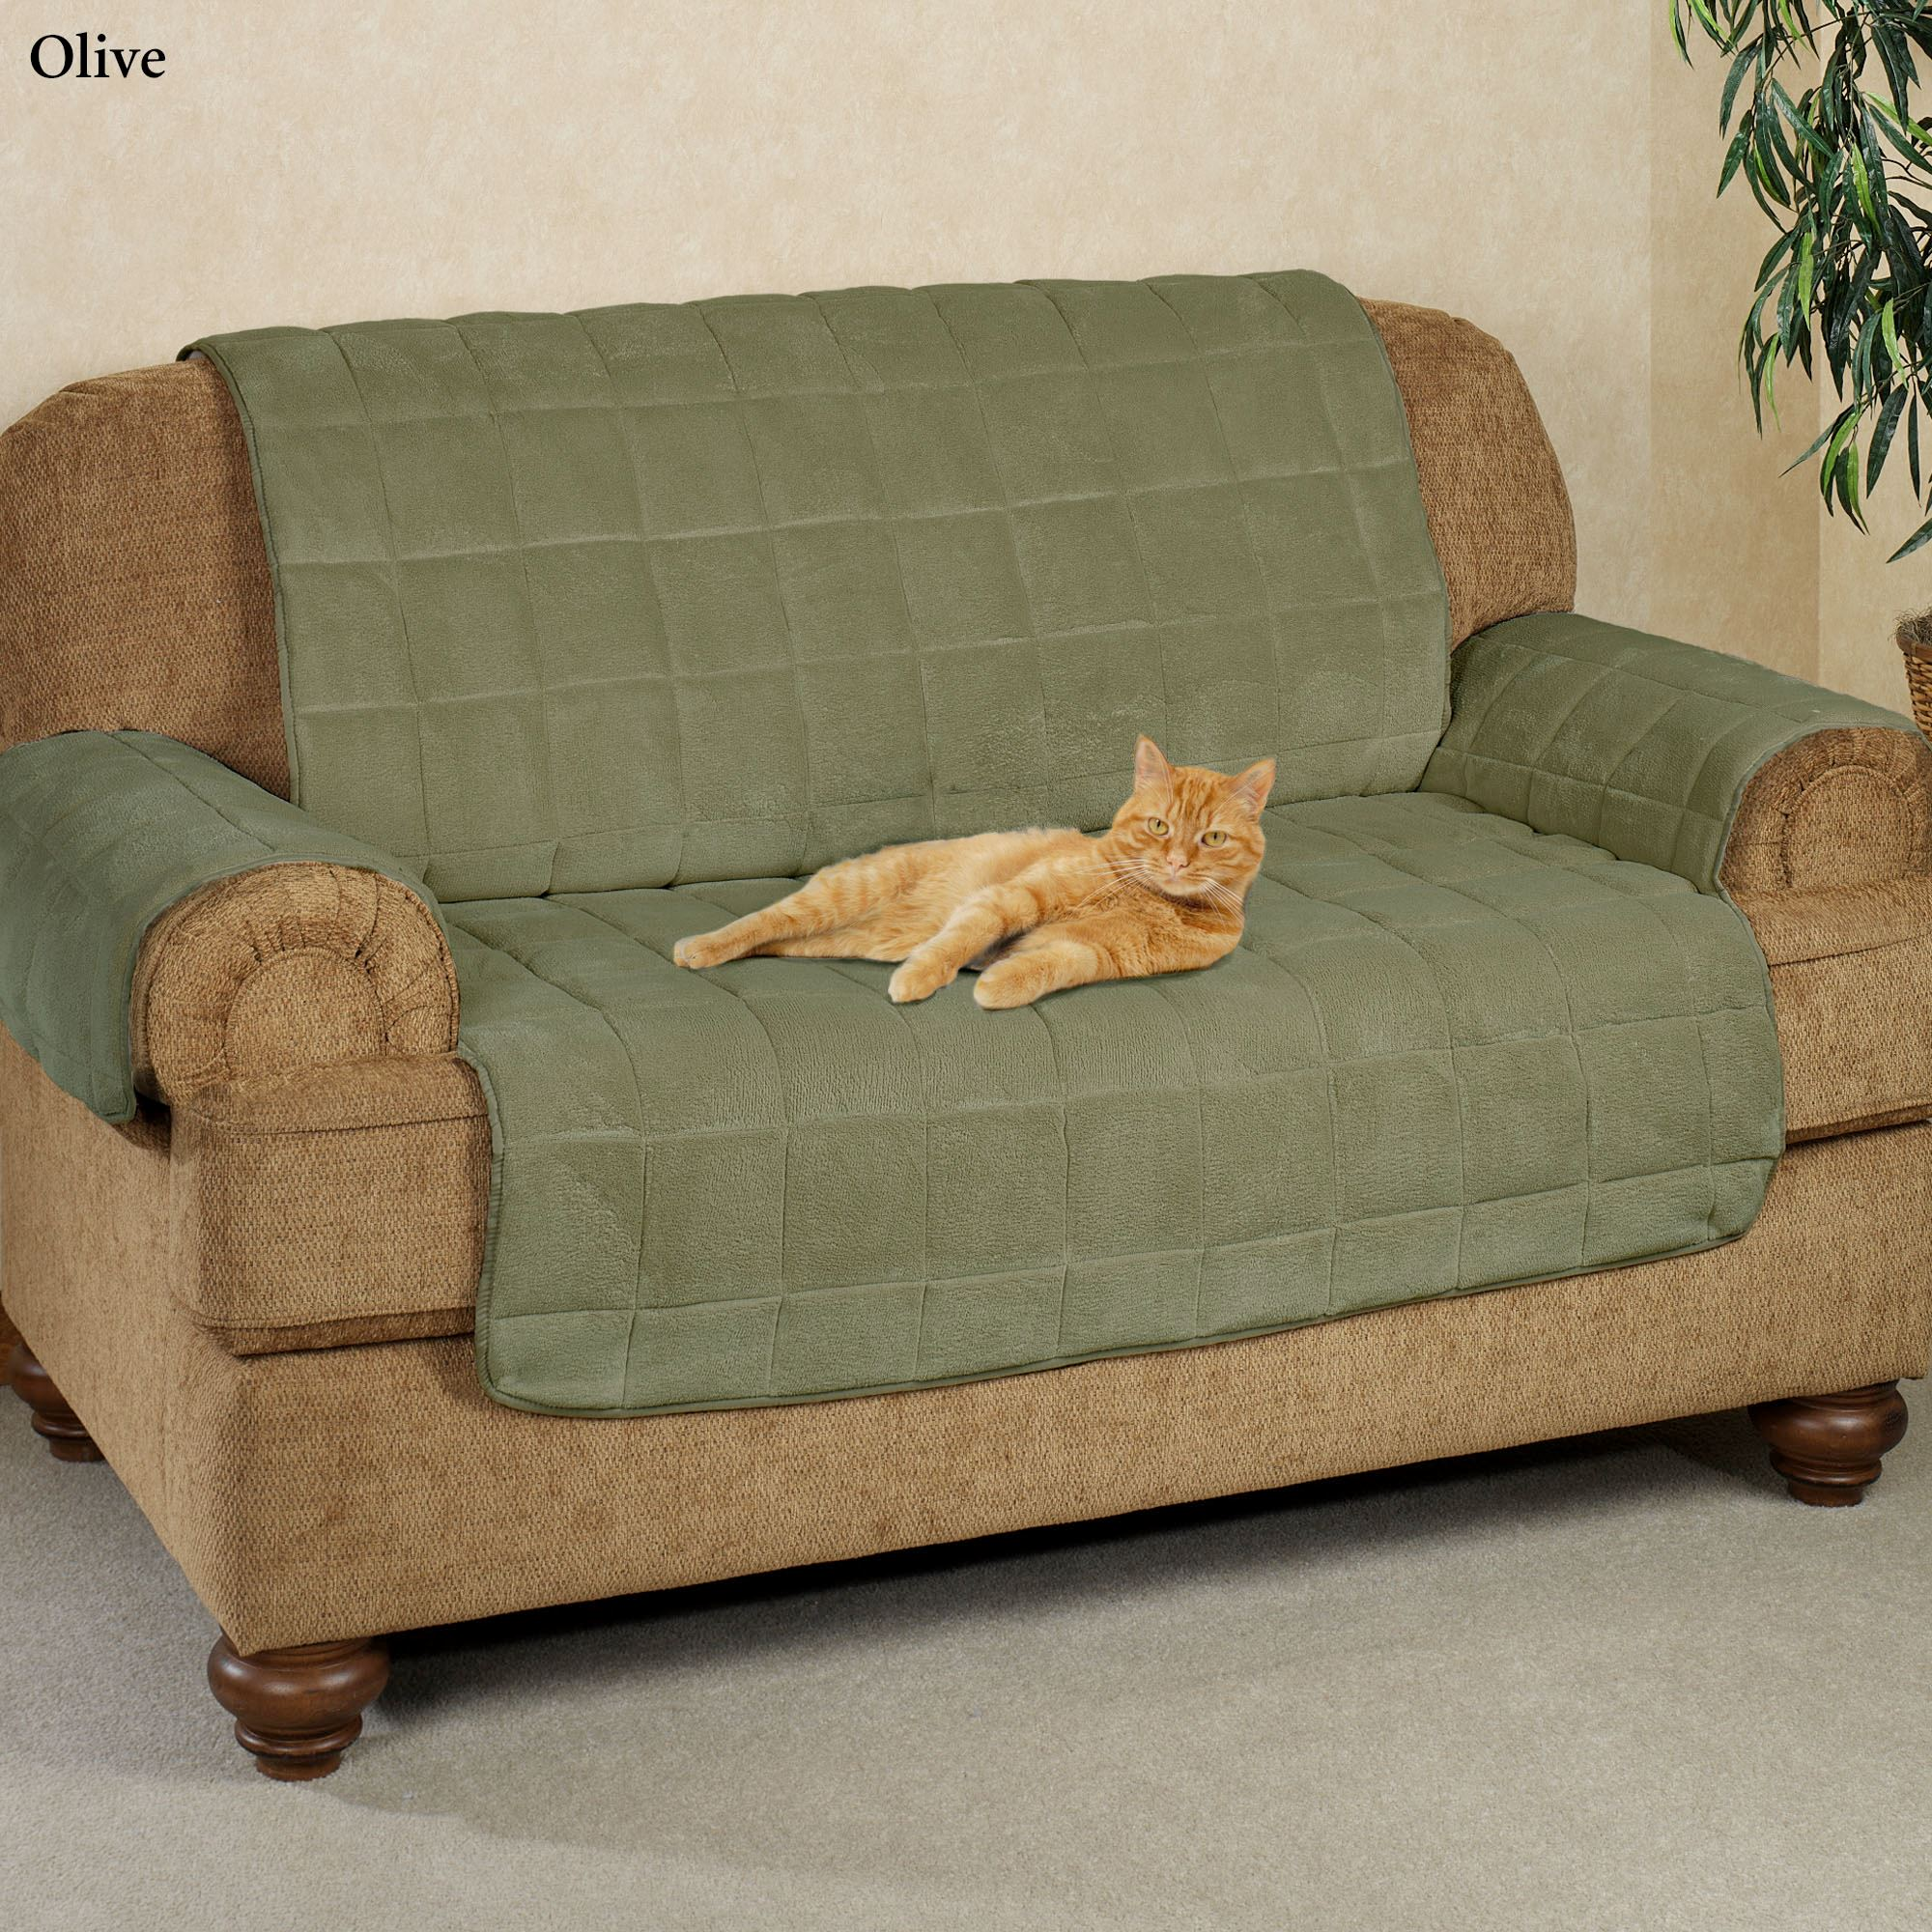 Pet Cover For Extra Large Couch 60 24: Microplush Pet Furniture Covers With Longer Back Flap